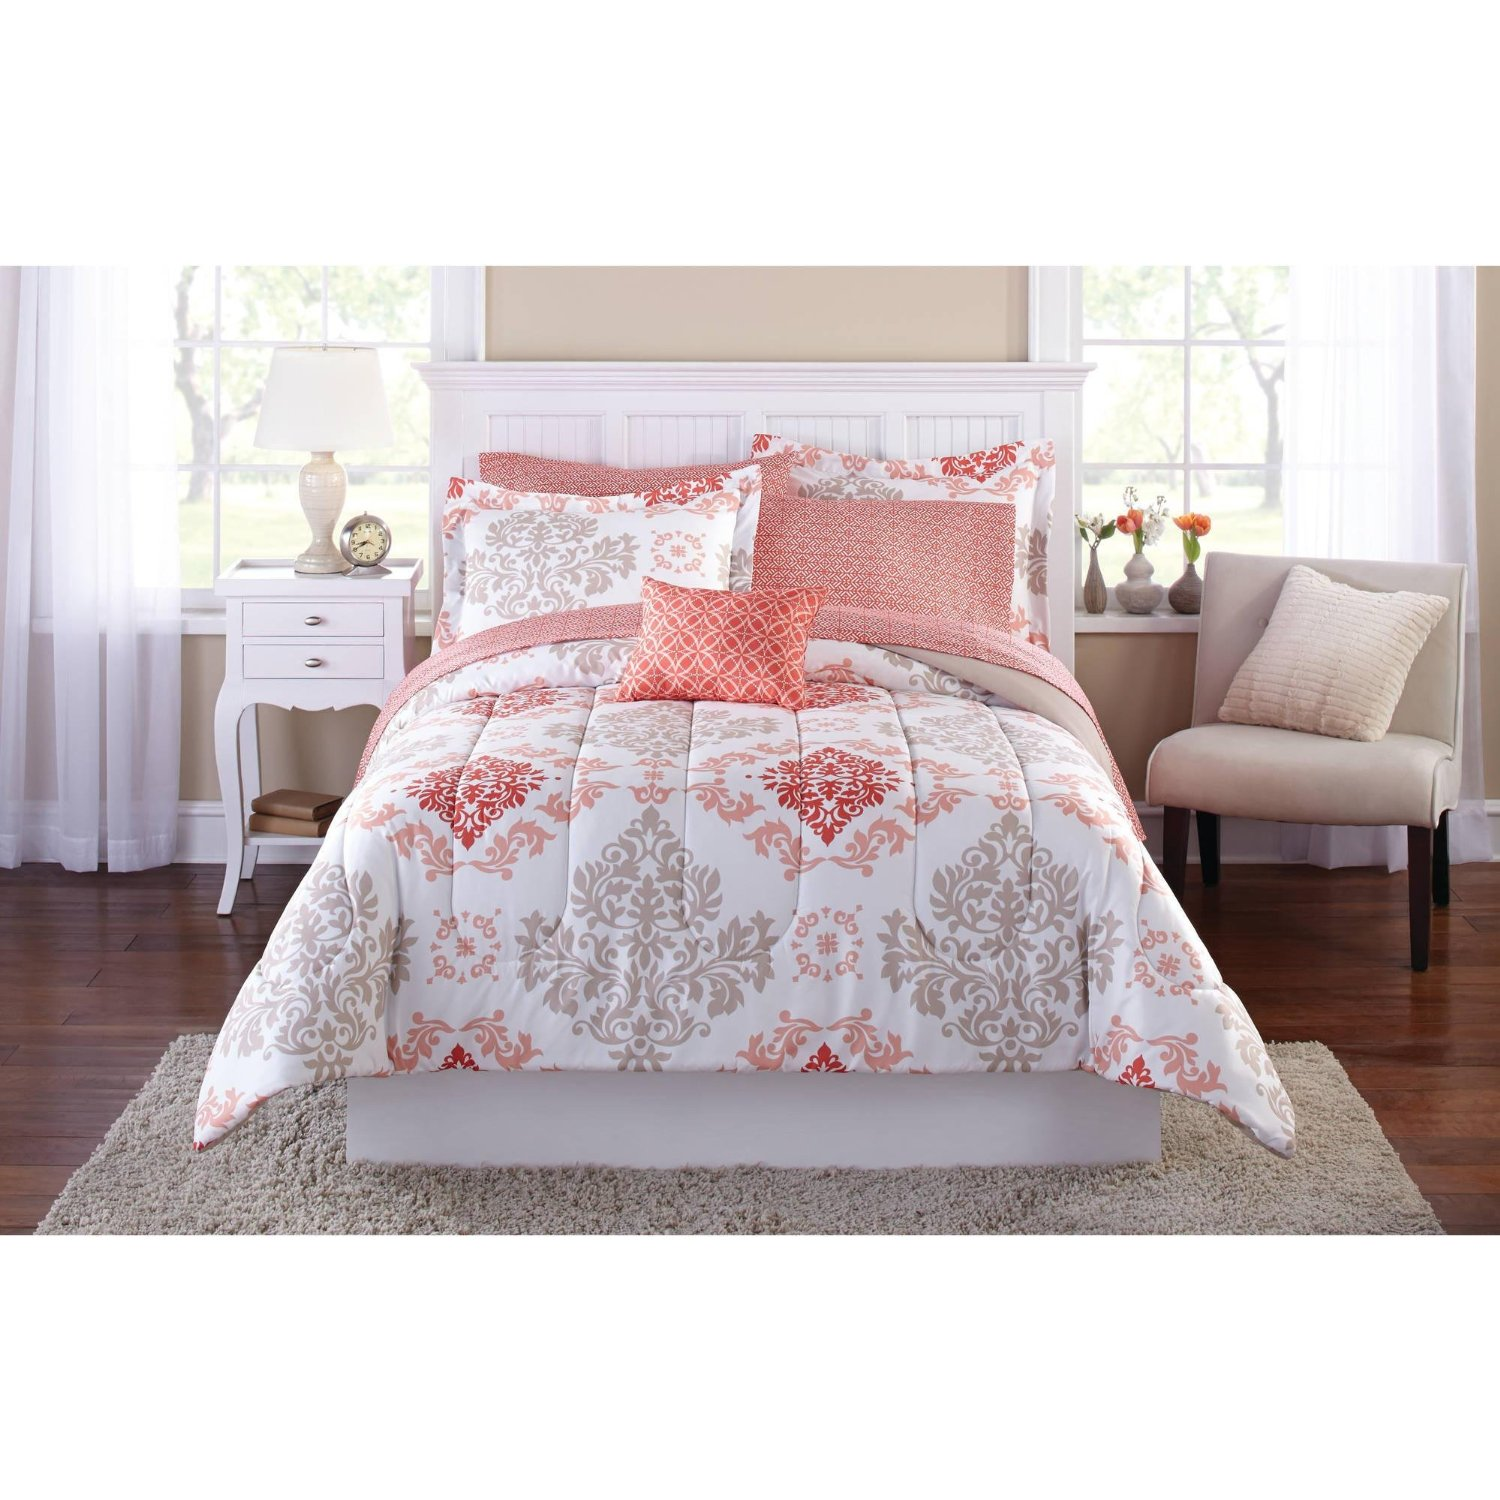 Teen Girls Pink Coral Damask 6 Piece Comforter Set, TWIN / TWIN XL Size Bed in A Bag